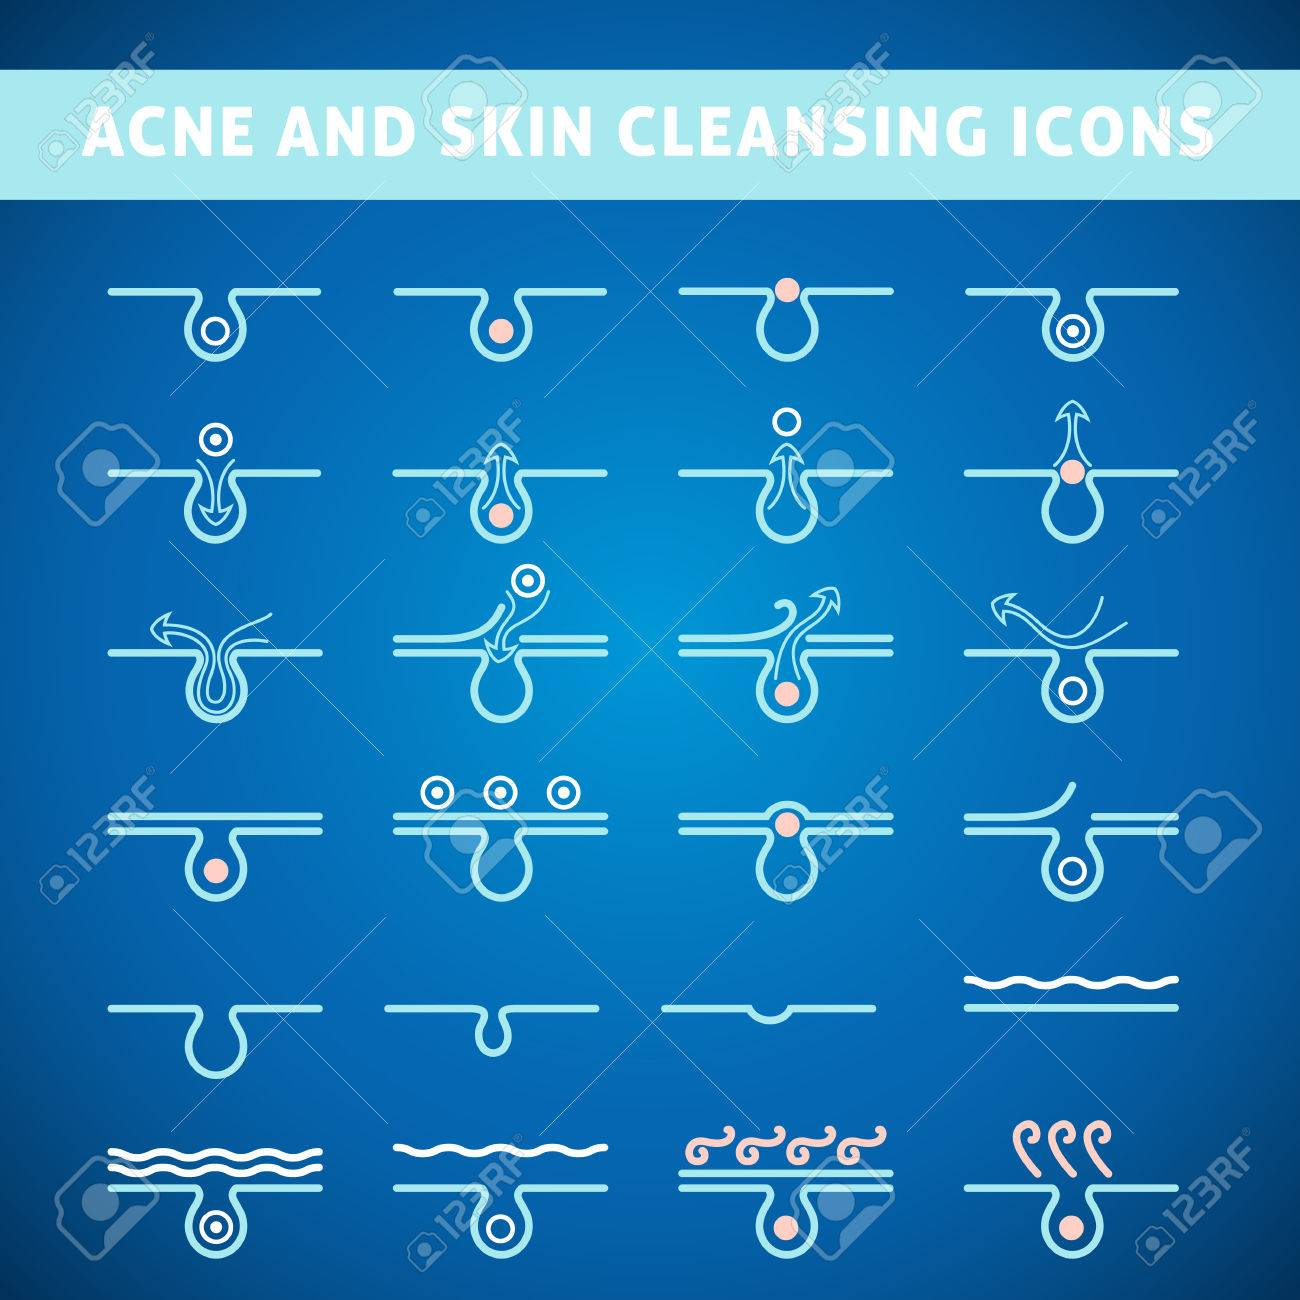 icon acne, schematic view of a skin care, problem skin with acne in section - 47006921